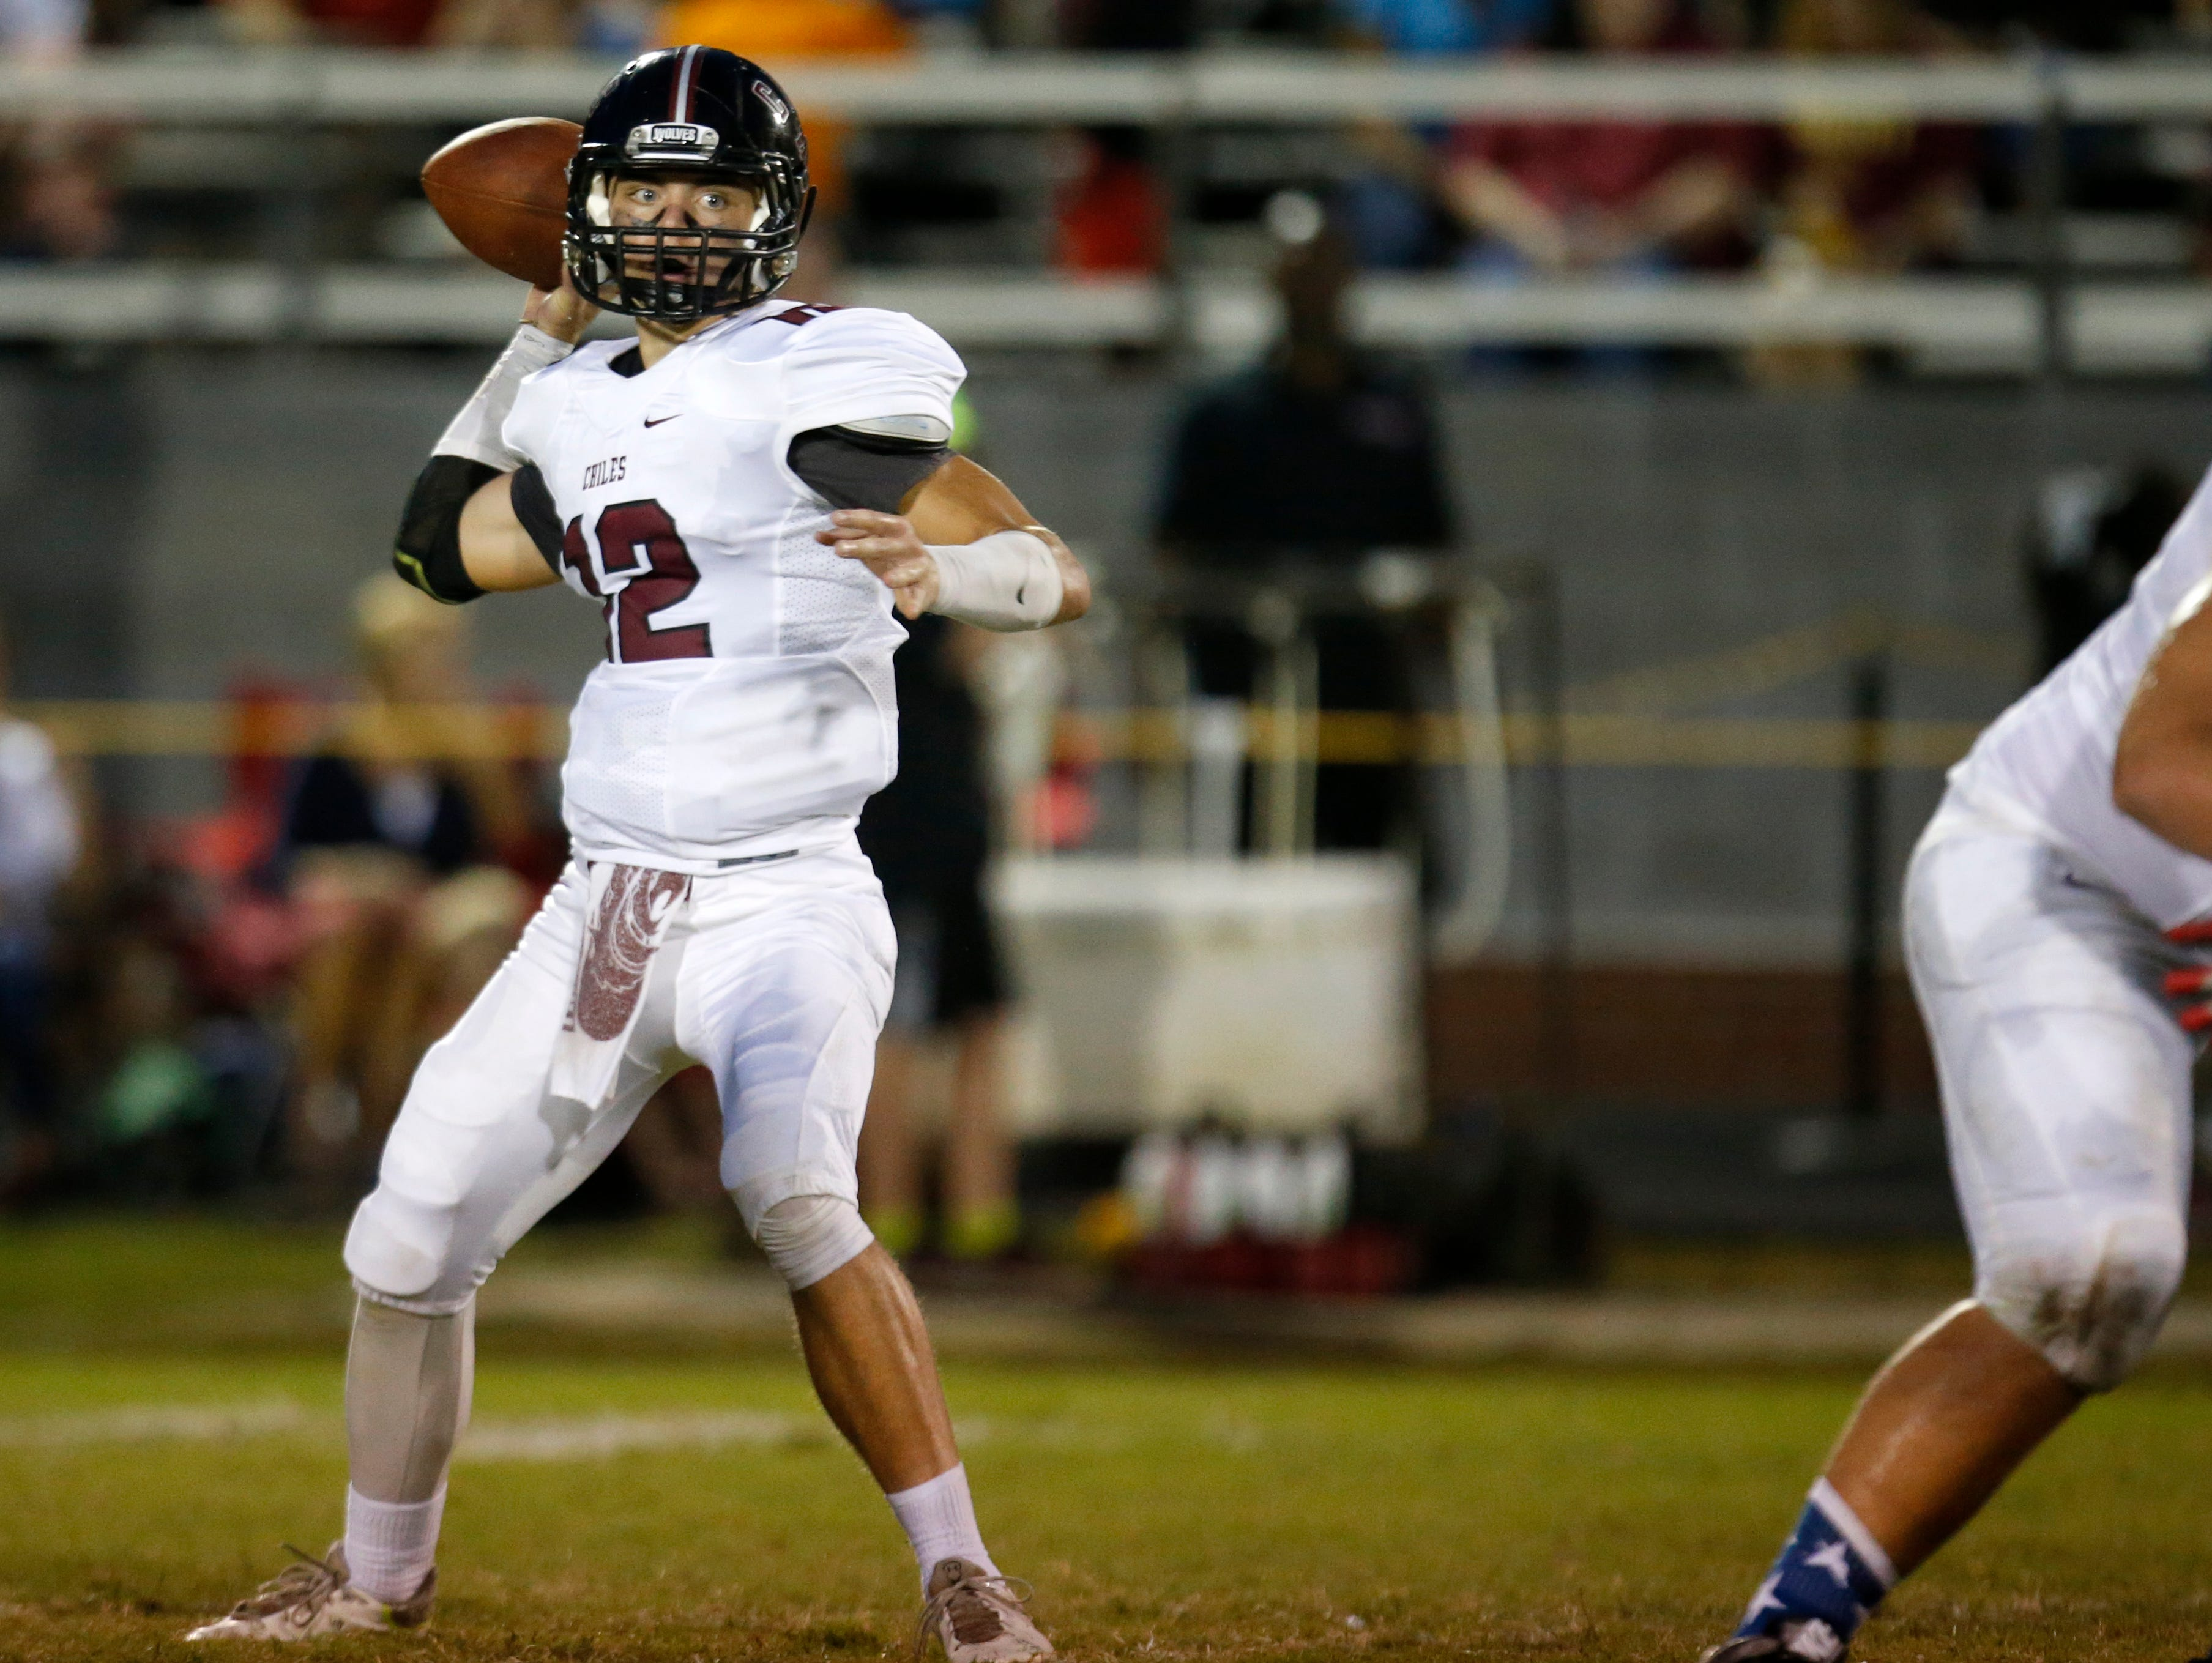 Chiles' quarterback Landon Simpkins throws a pass against NFC during their game at NFC High School on Friday.